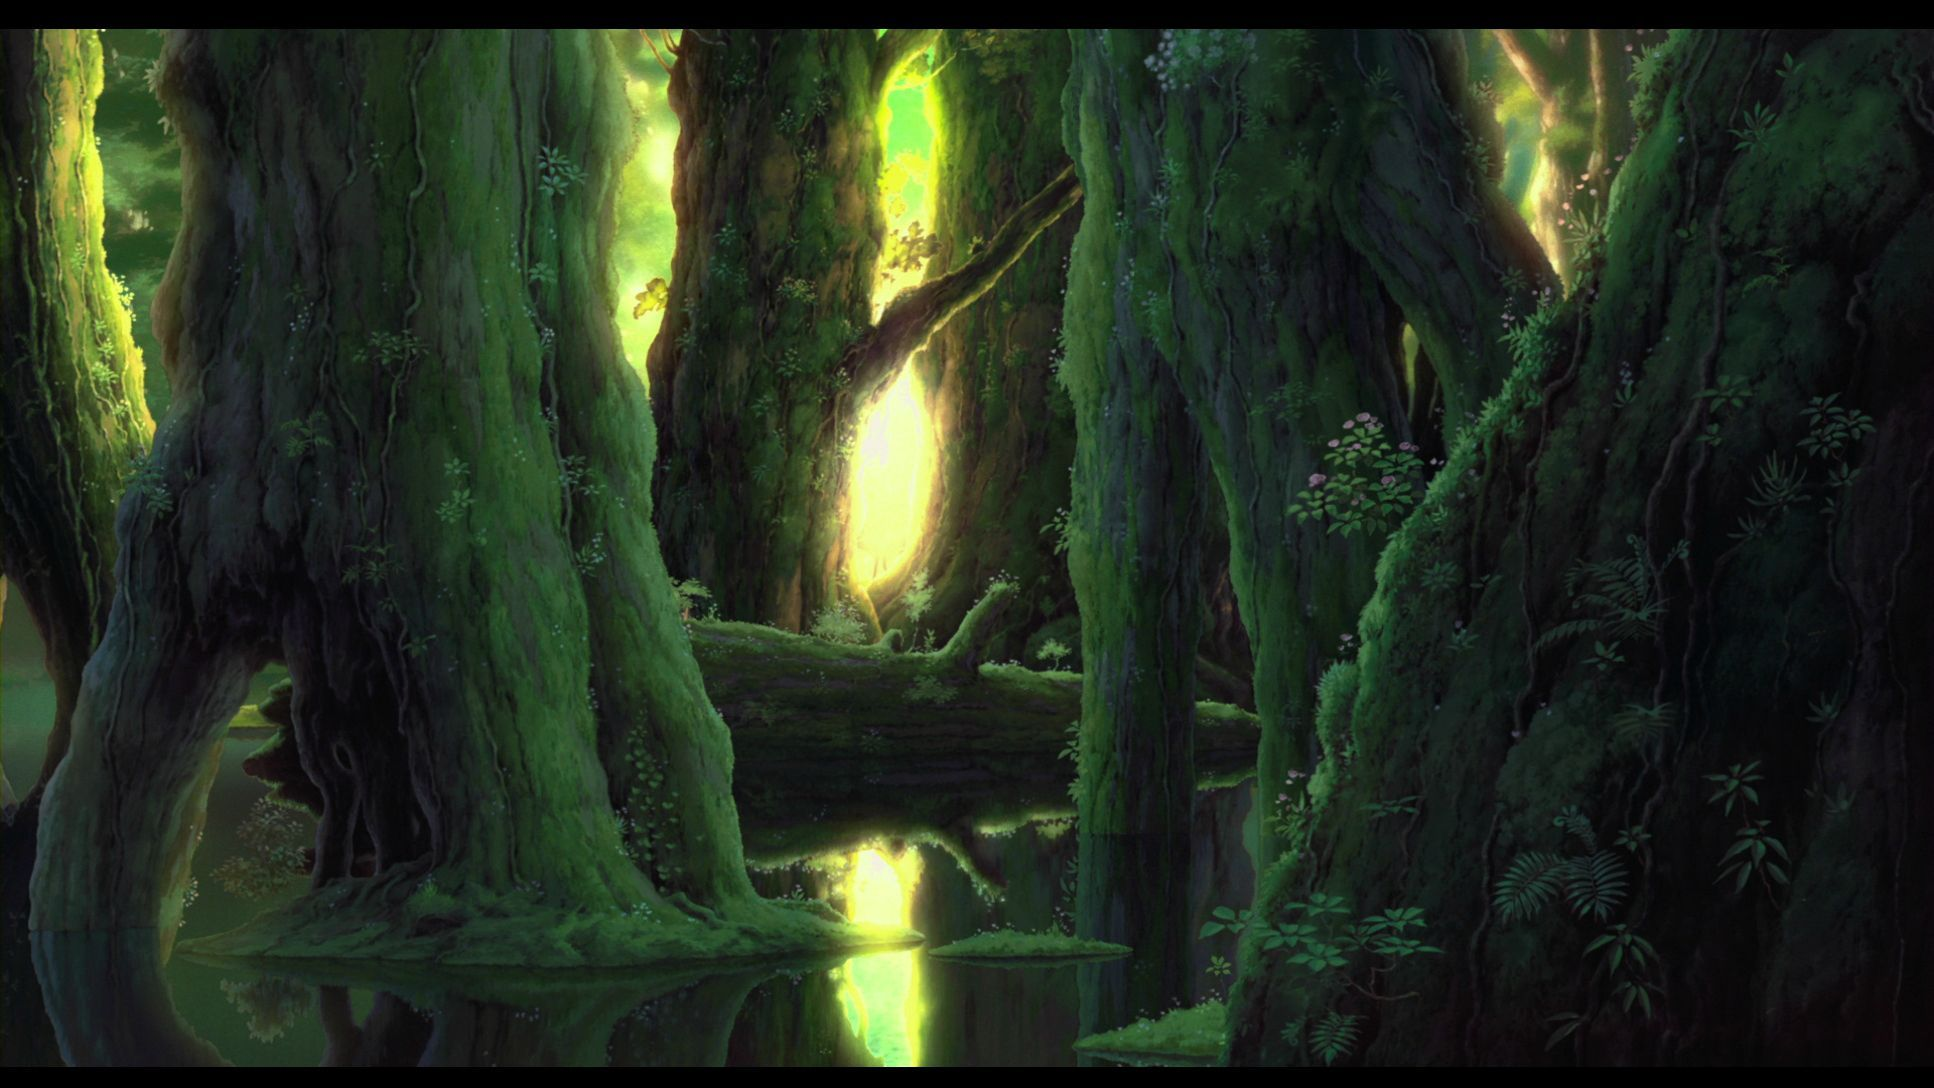 Princess Mononoke Hd Wallpaper Dump 1920x1080 More In Comments Wallpapers Princess Mononoke Anime Scenery Princess Mononoke Wallpaper